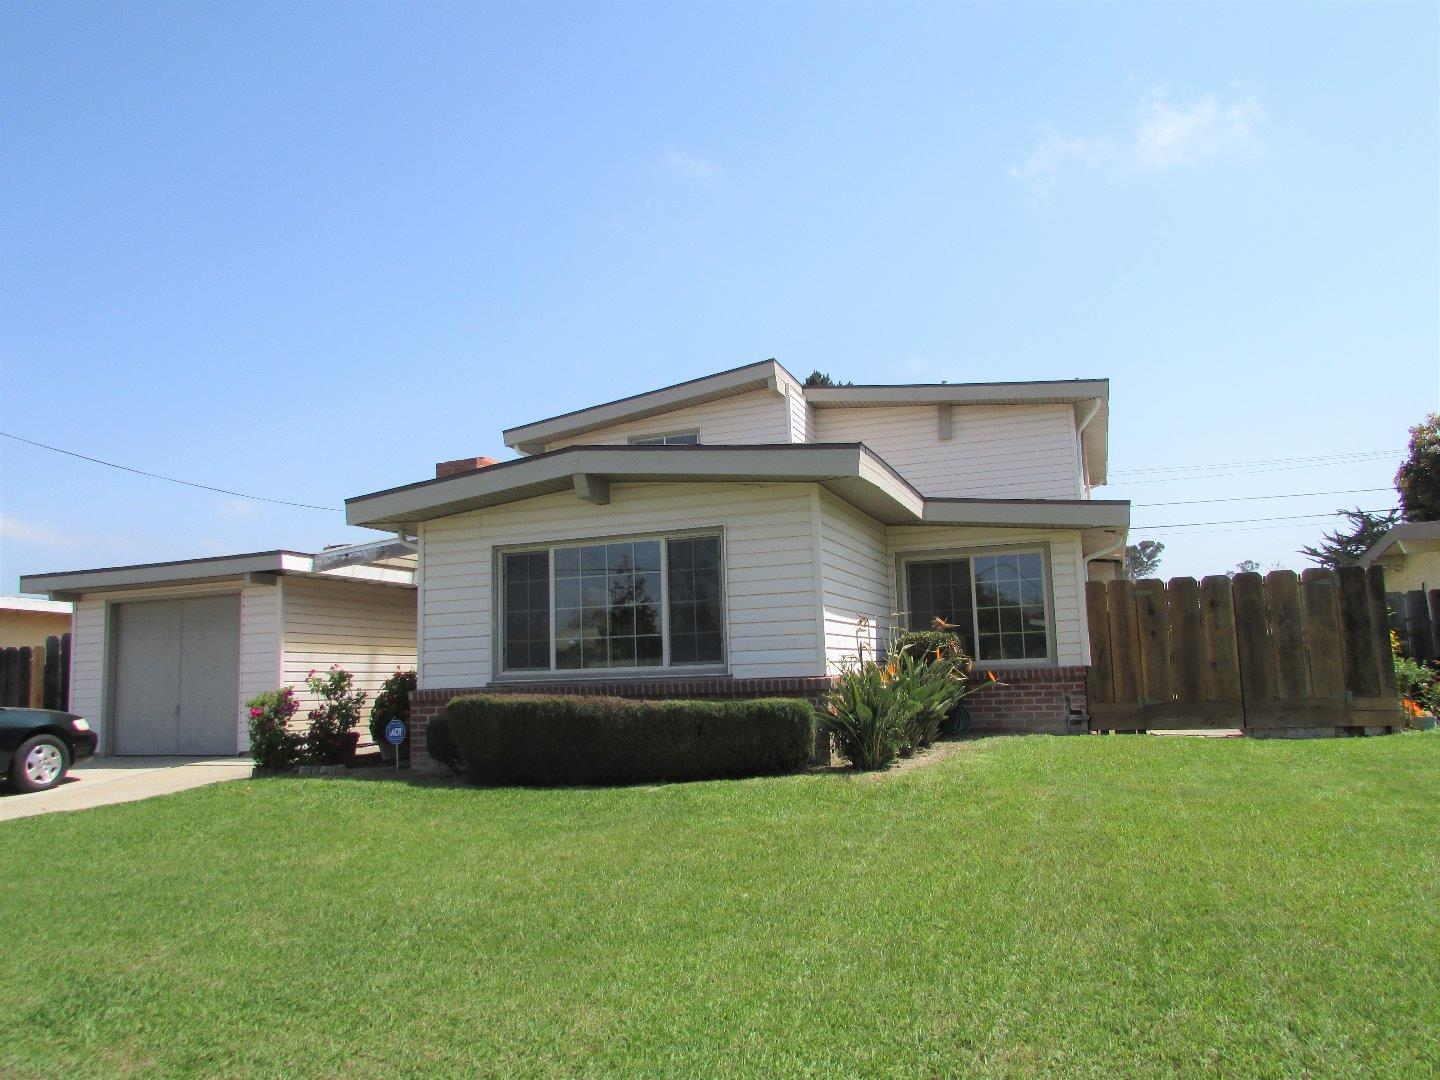 Detail Gallery Image 1 of 1 For 449 Carol Dr, Salinas, CA, 93905 - 5 Beds | 2 Baths